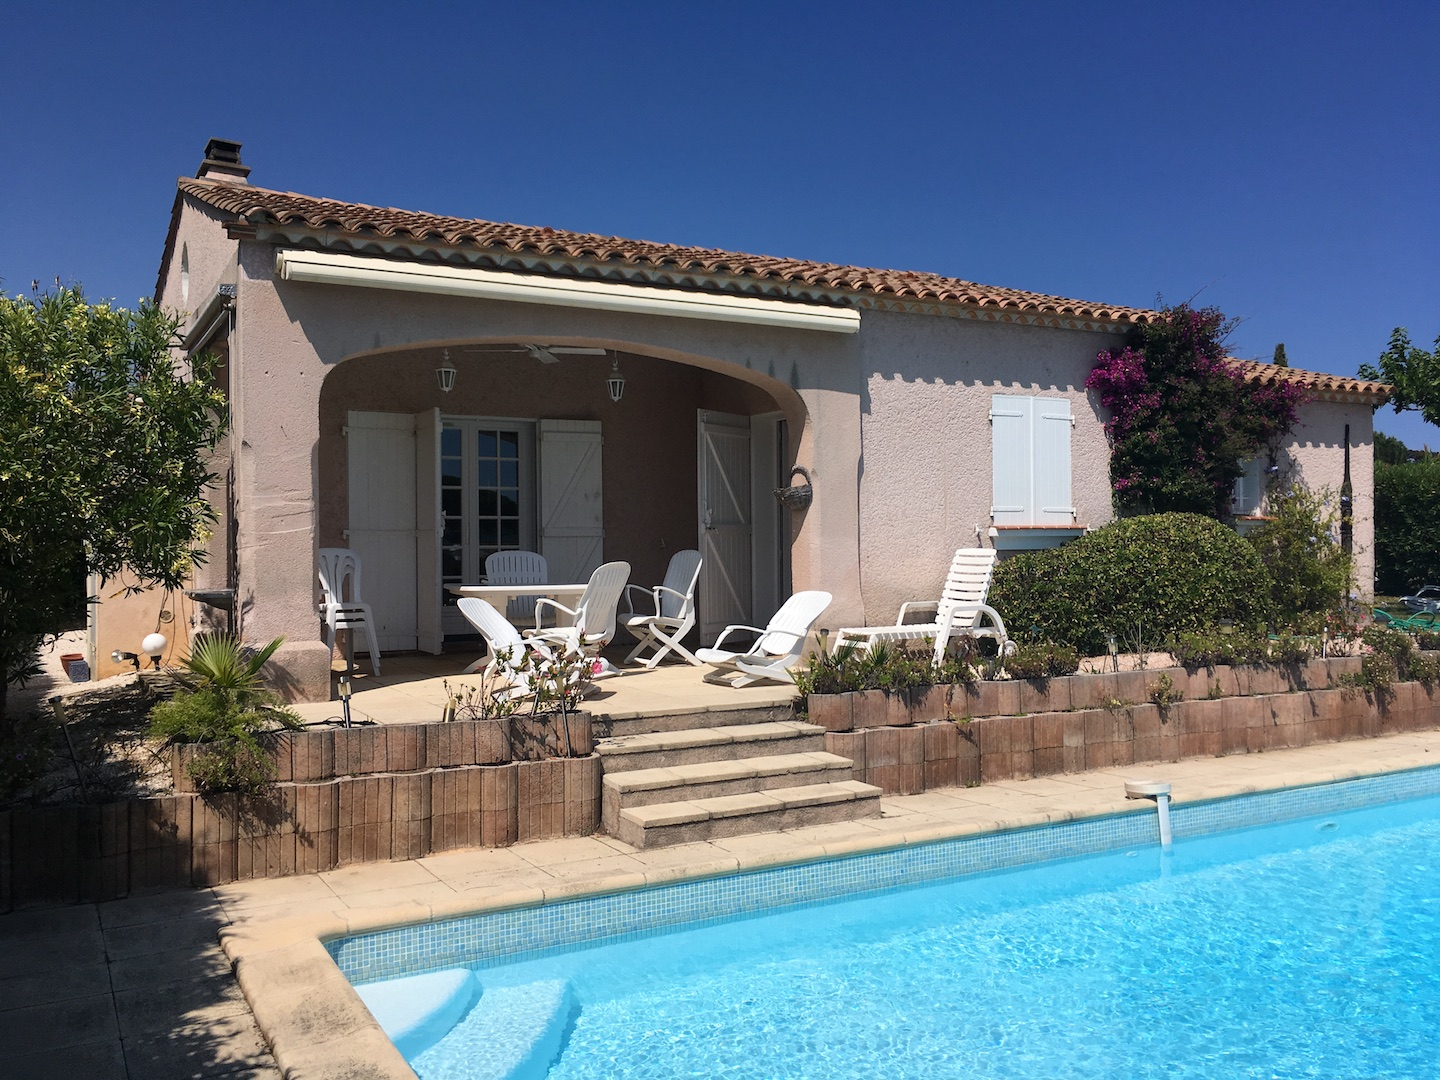 Renovation Beauvallon Grimaud3